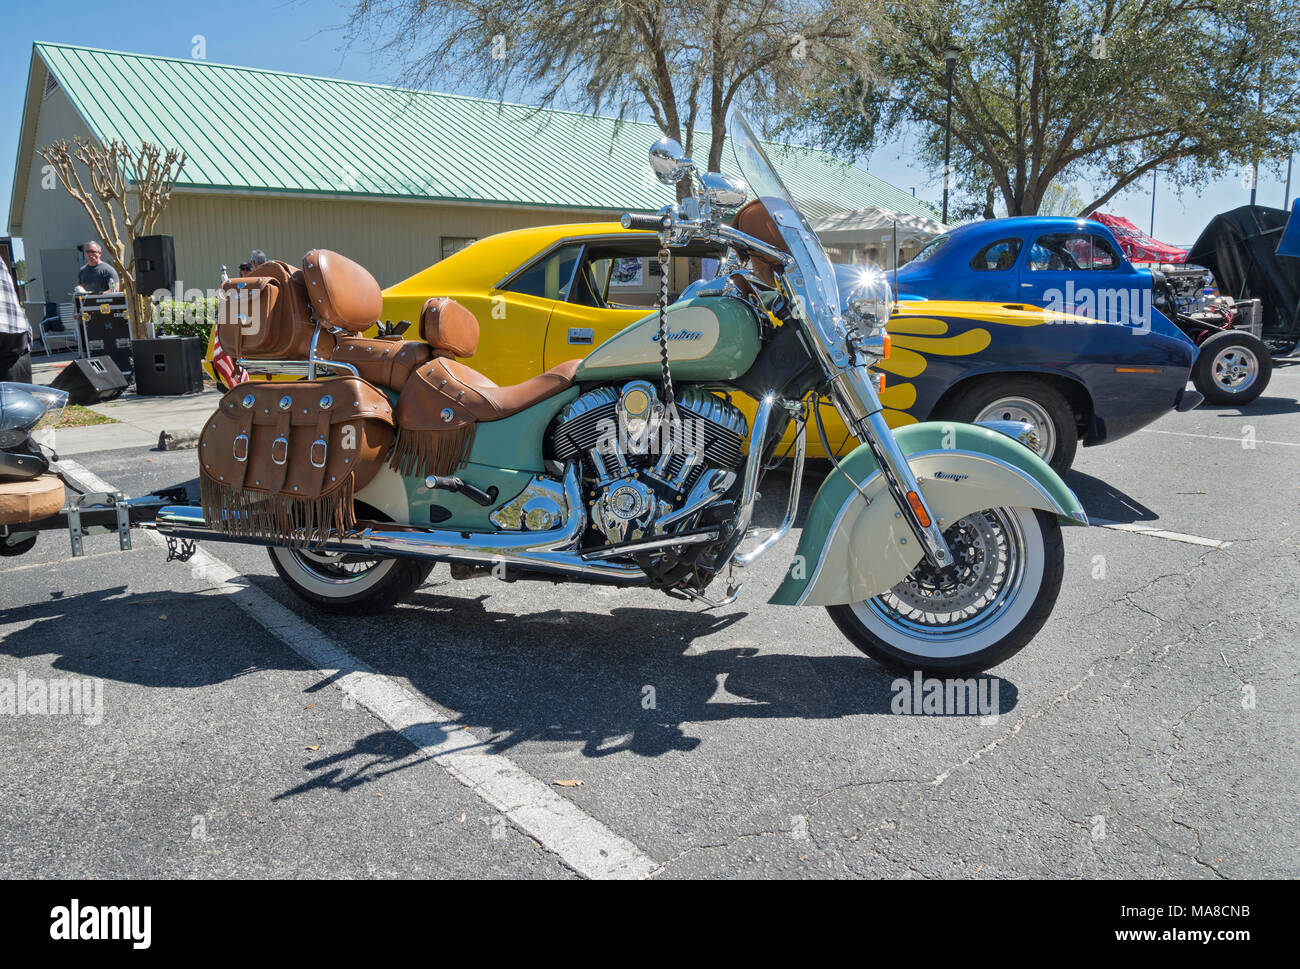 Motorcycle Classic Cars Stock Photos & Motorcycle Classic Cars Stock ...